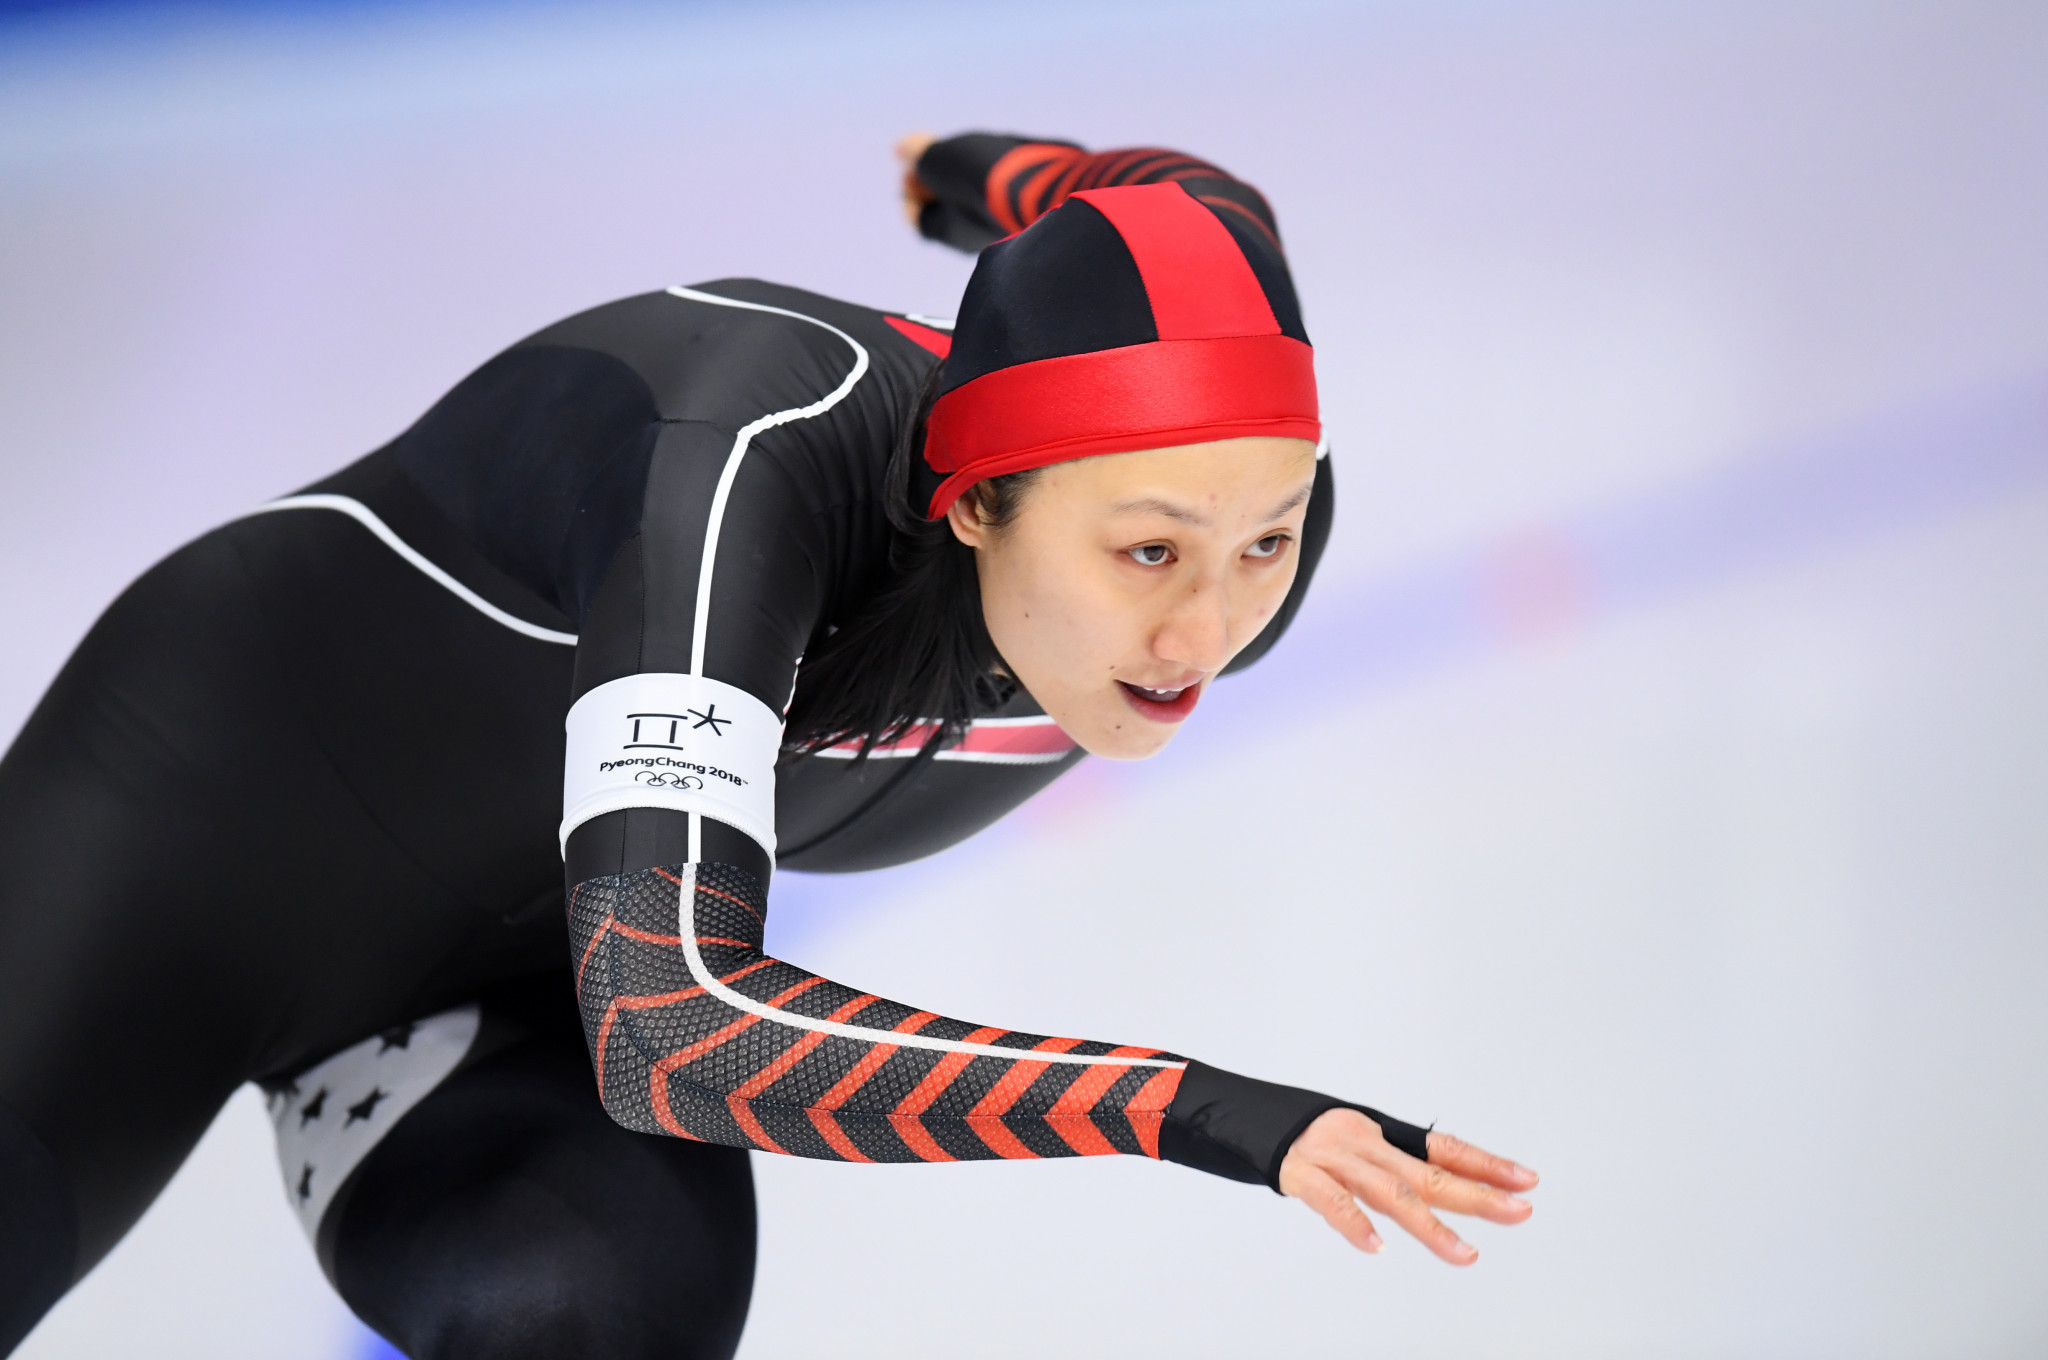 Chinese speed skater elected onto IOC Athletes' Commission as Coventry confirmed as Executive Board member